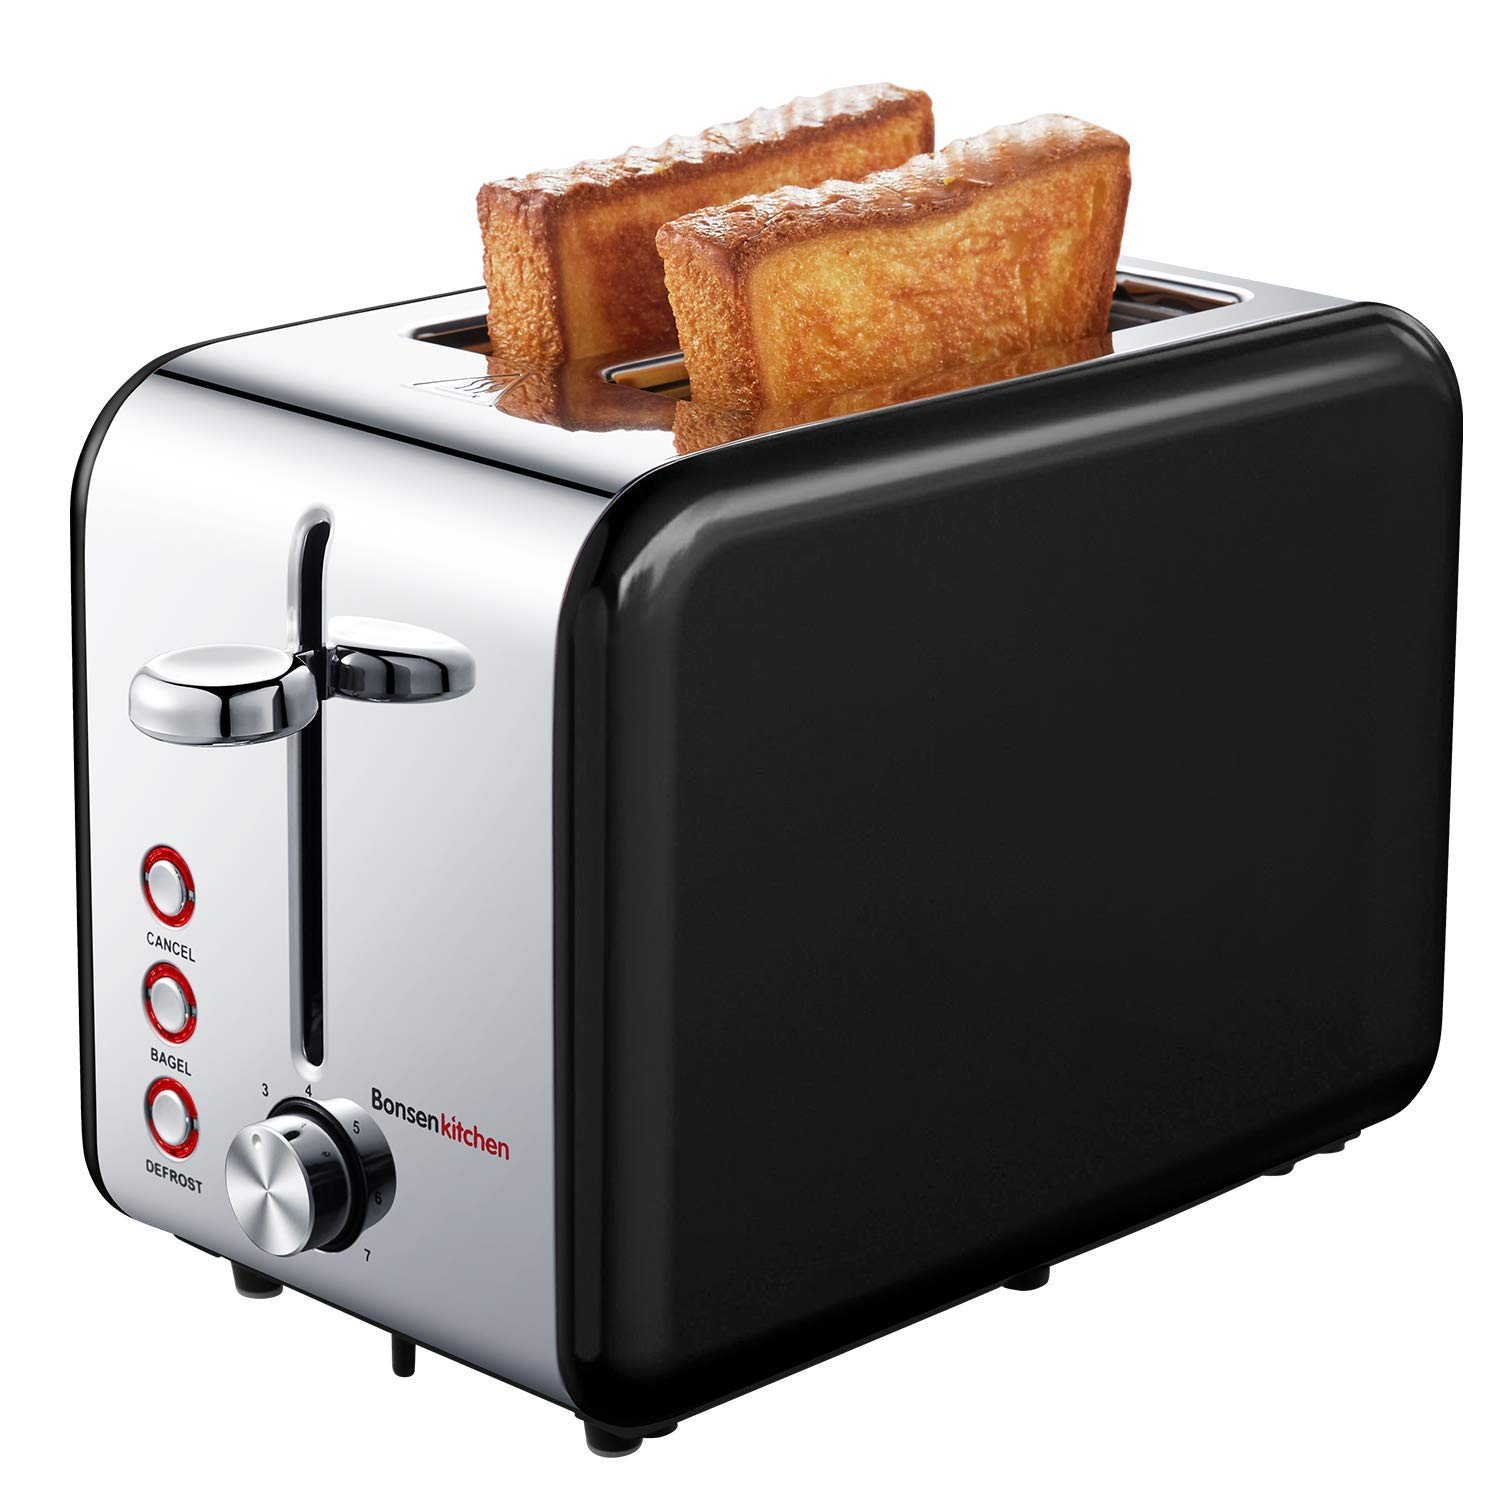 Bonsenkitchen 2-Slice Extra-Wide Slot Toaster with Defrost/Bagel/Cancel Function, 7 Shade Setting, Black Stainless Steel Bagel Toaster by Bonsenkitchen